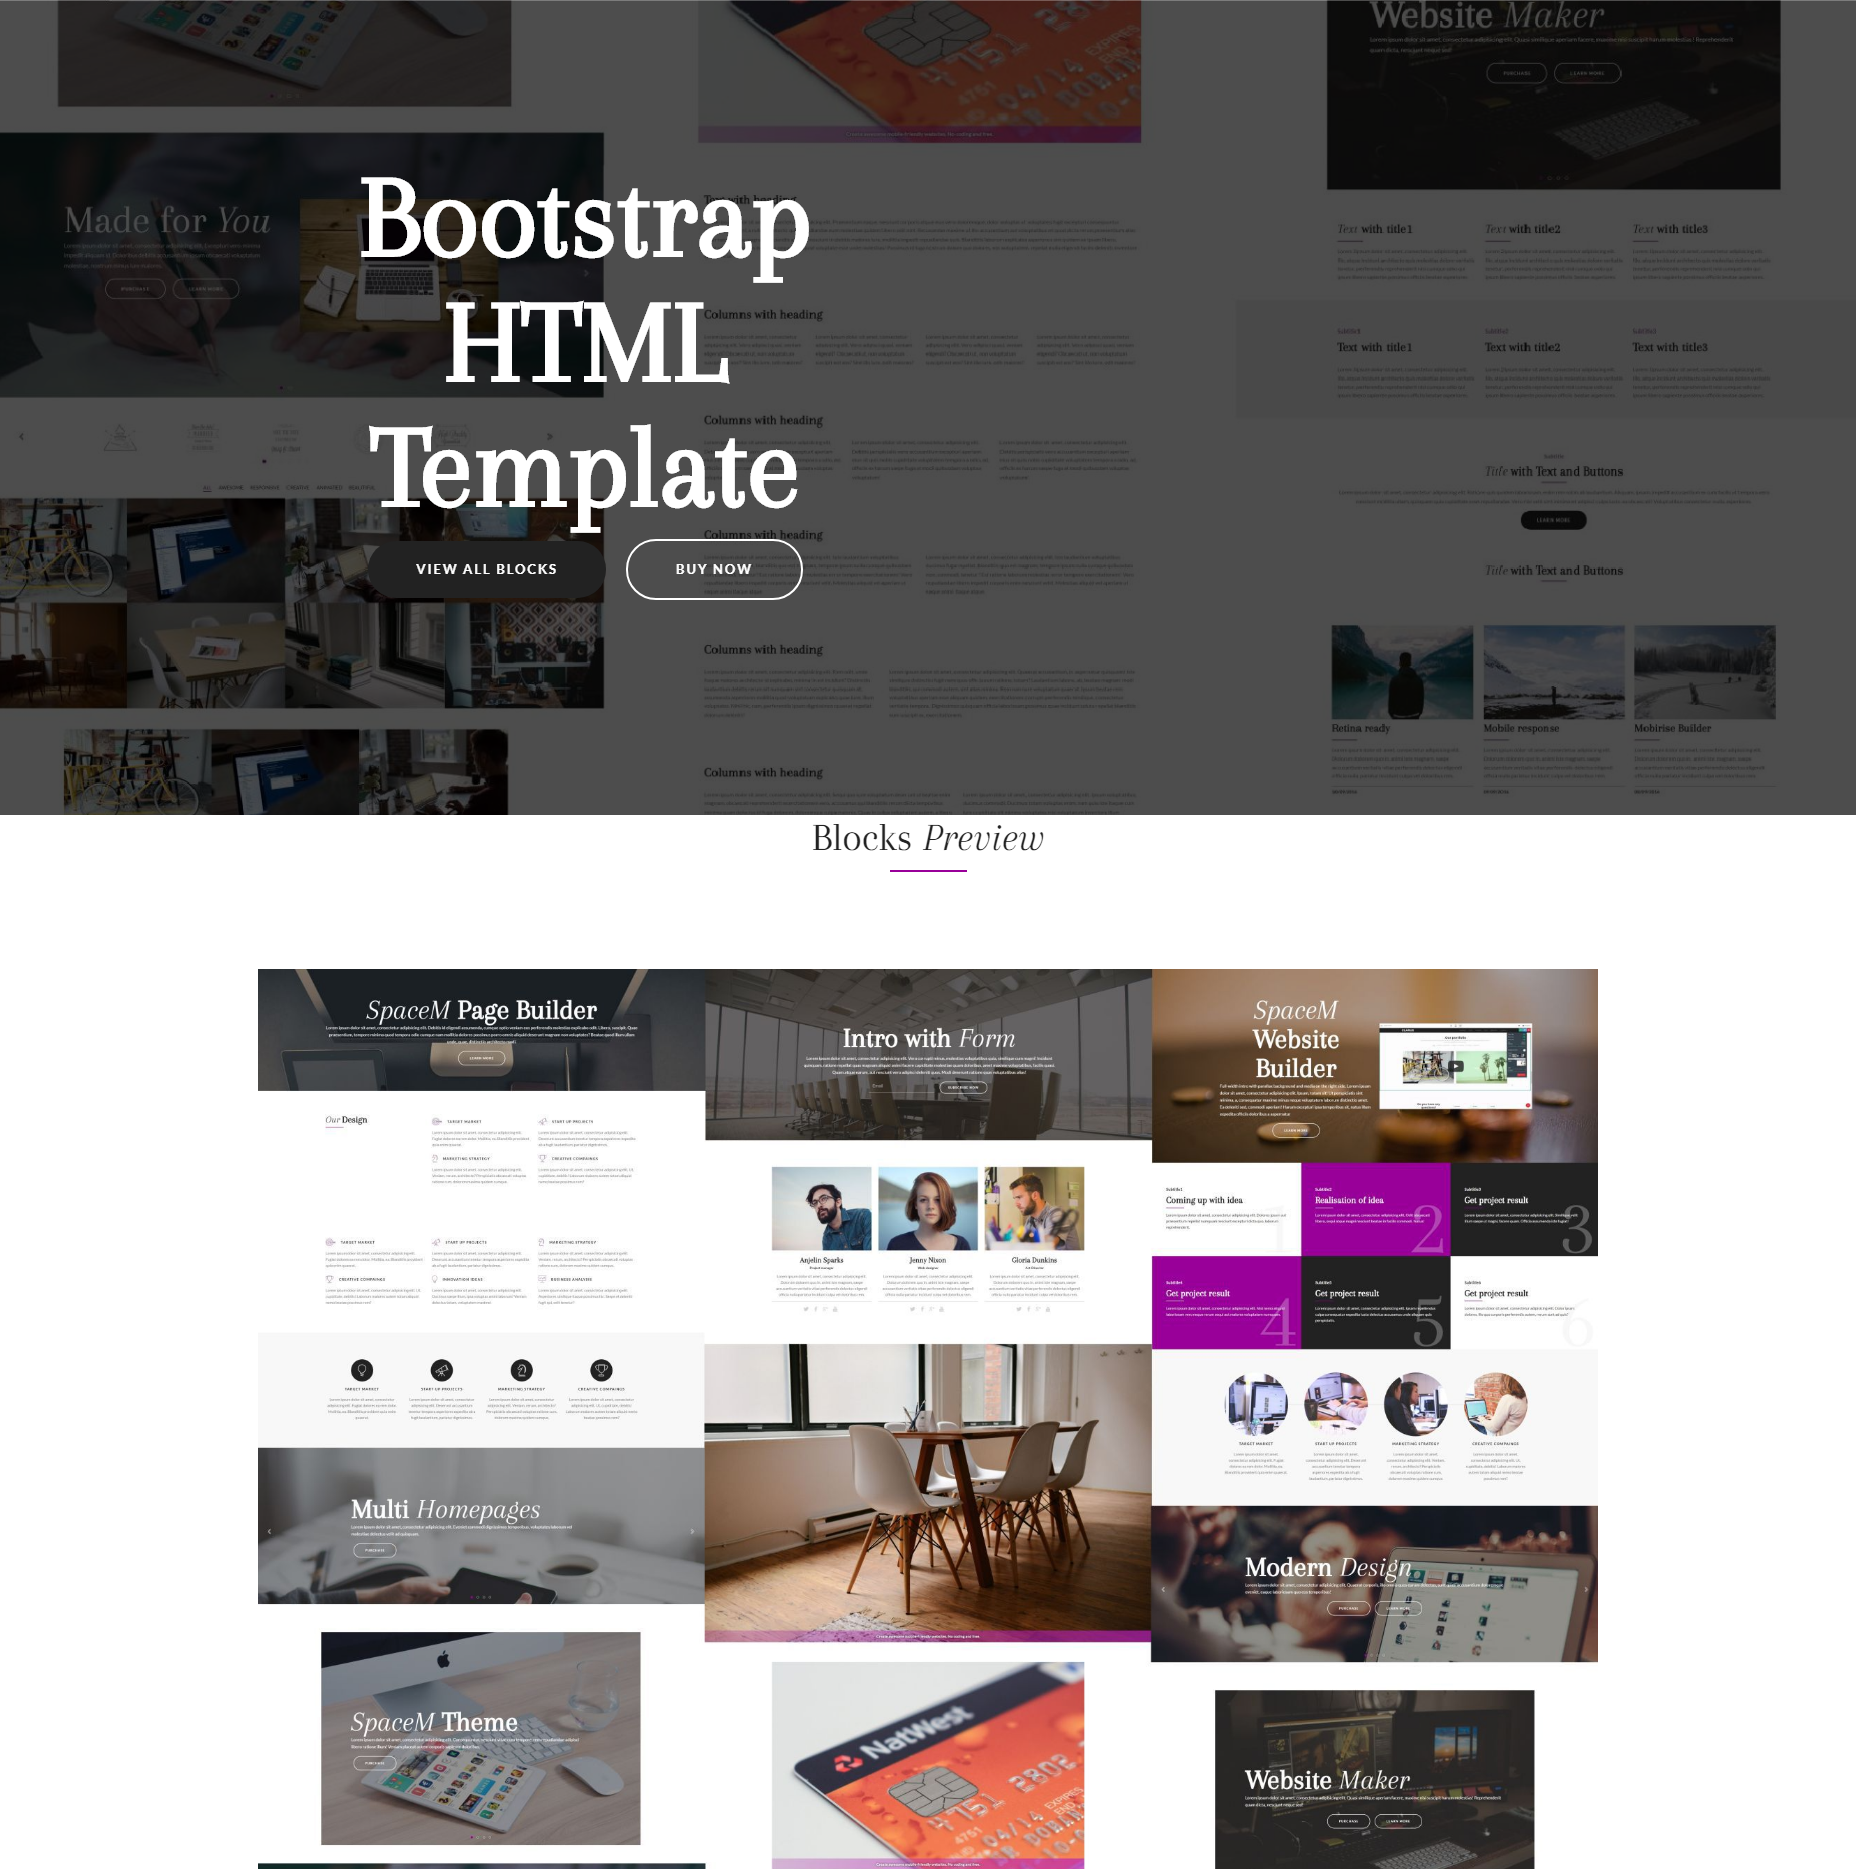 Best 49 Brand New HTML5 Bootstrap Templates of 2018